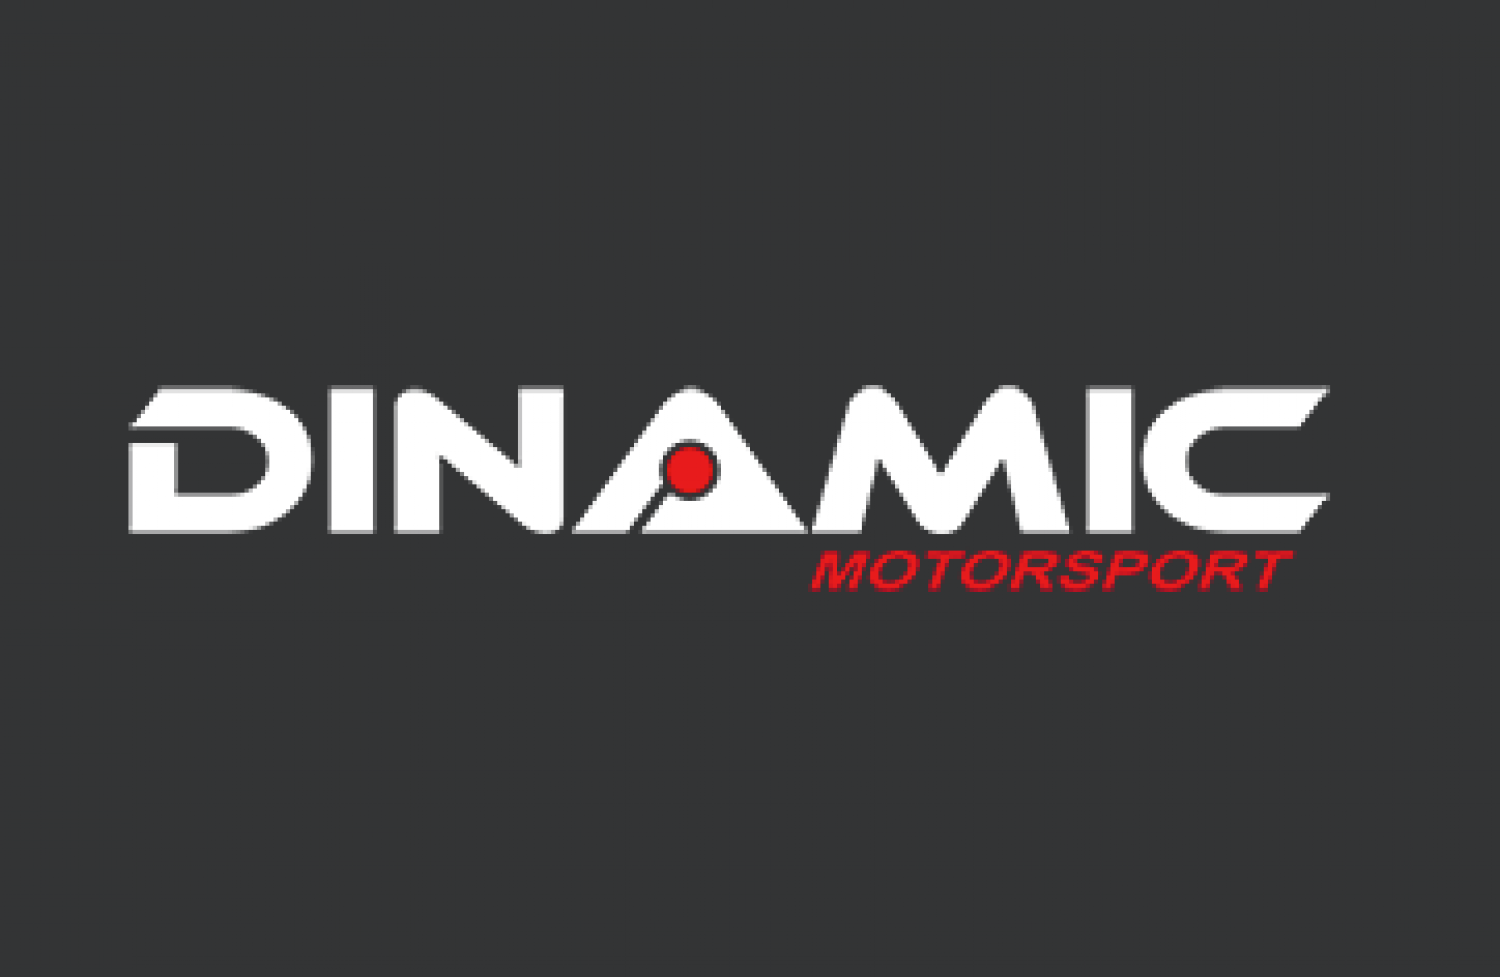 Dinamic Motorsport confirms Bachler and Rizzoli for 2019 Endurance Cup assault